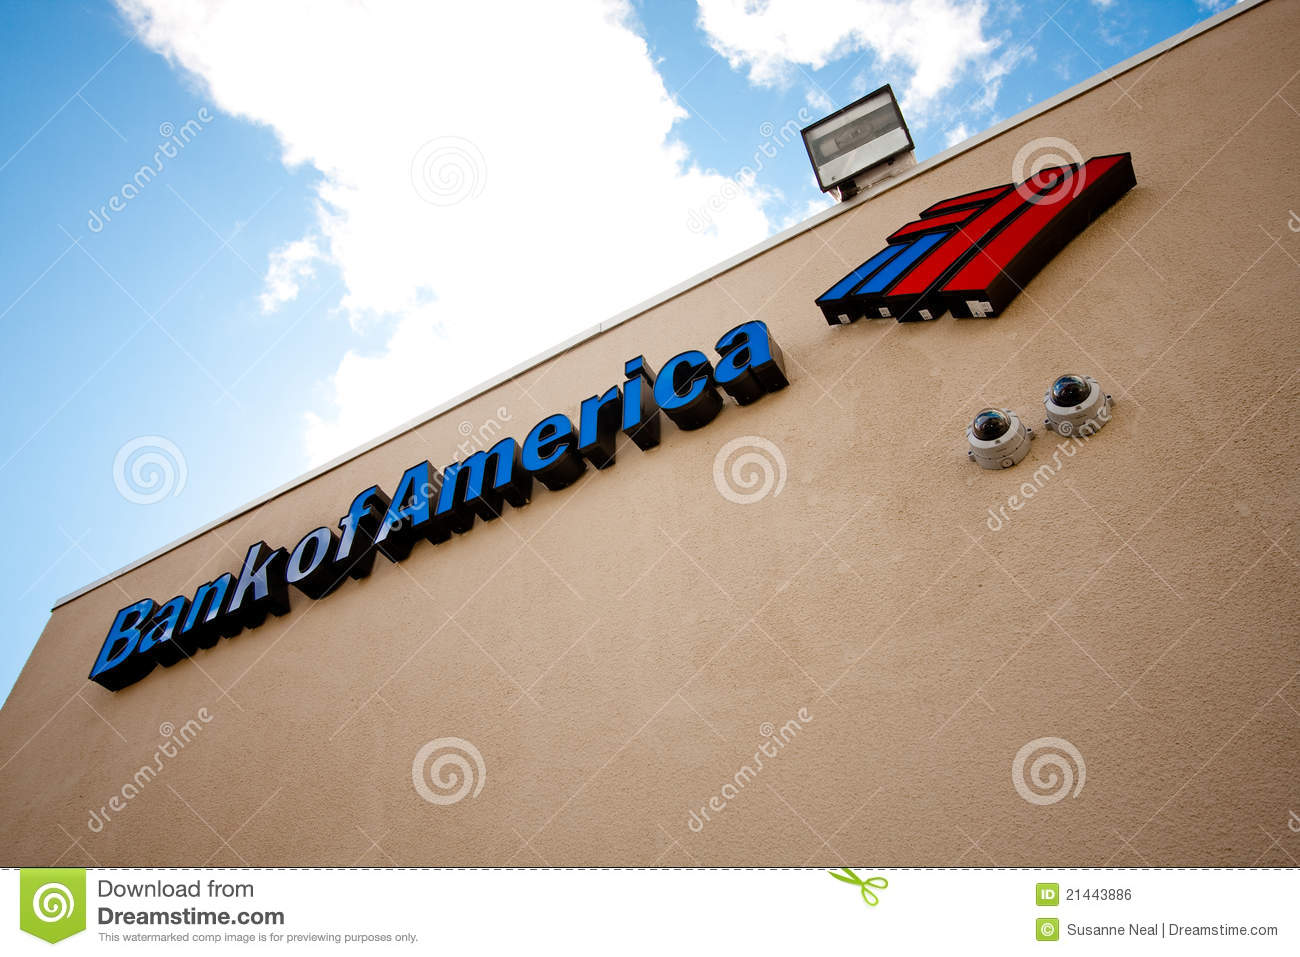 Bank of America la muestra